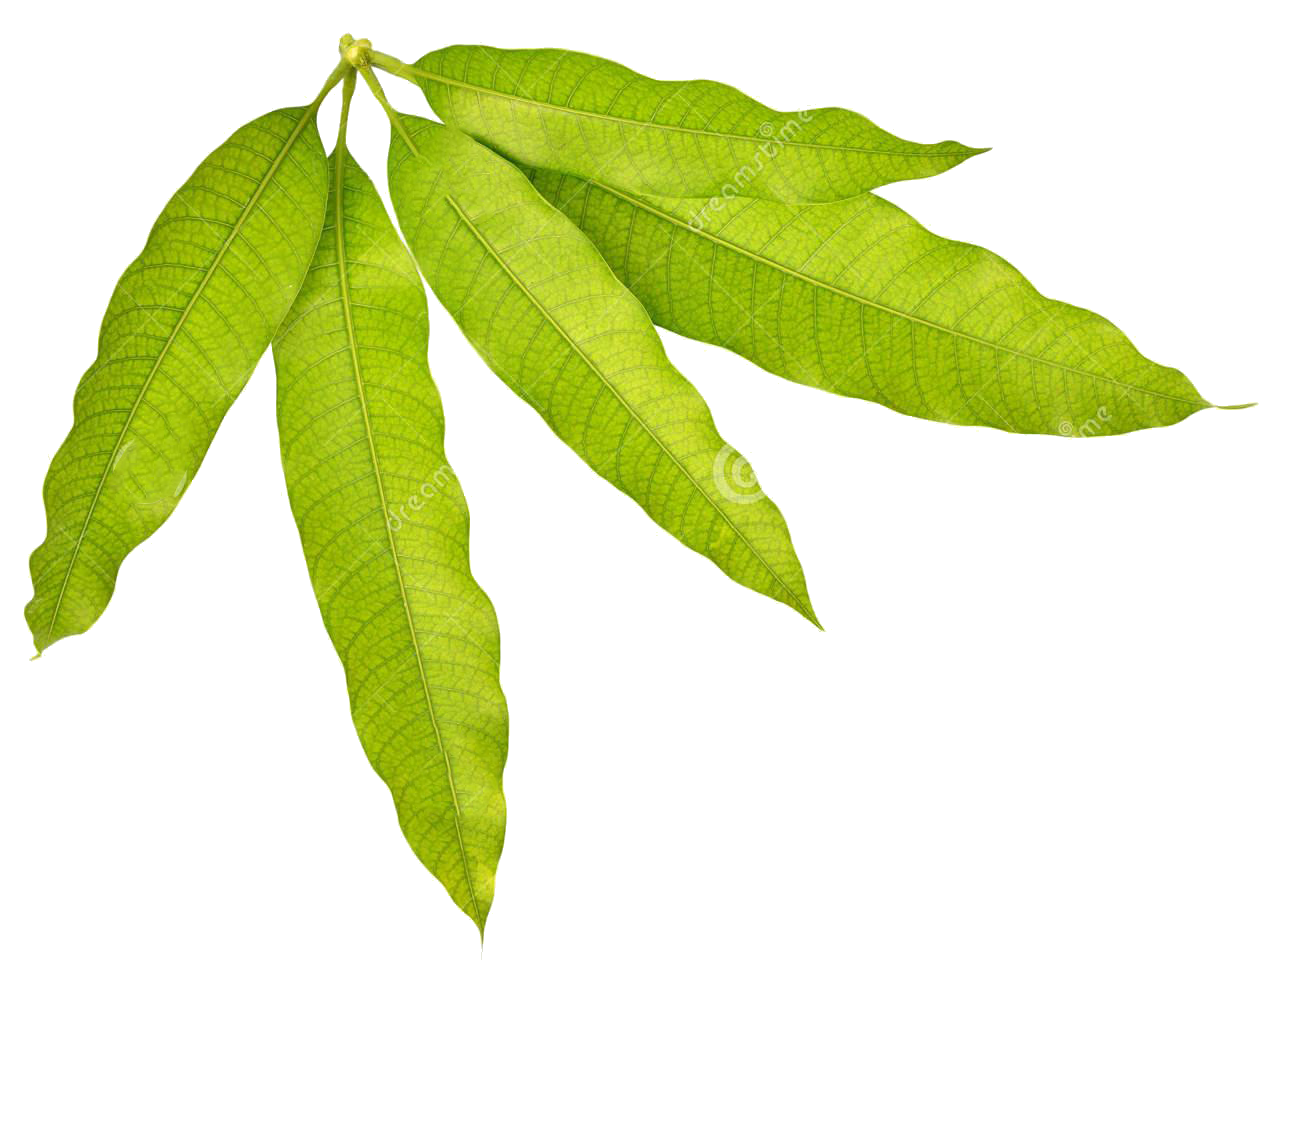 Transparent photography leaf. Mango stock leaves transprent